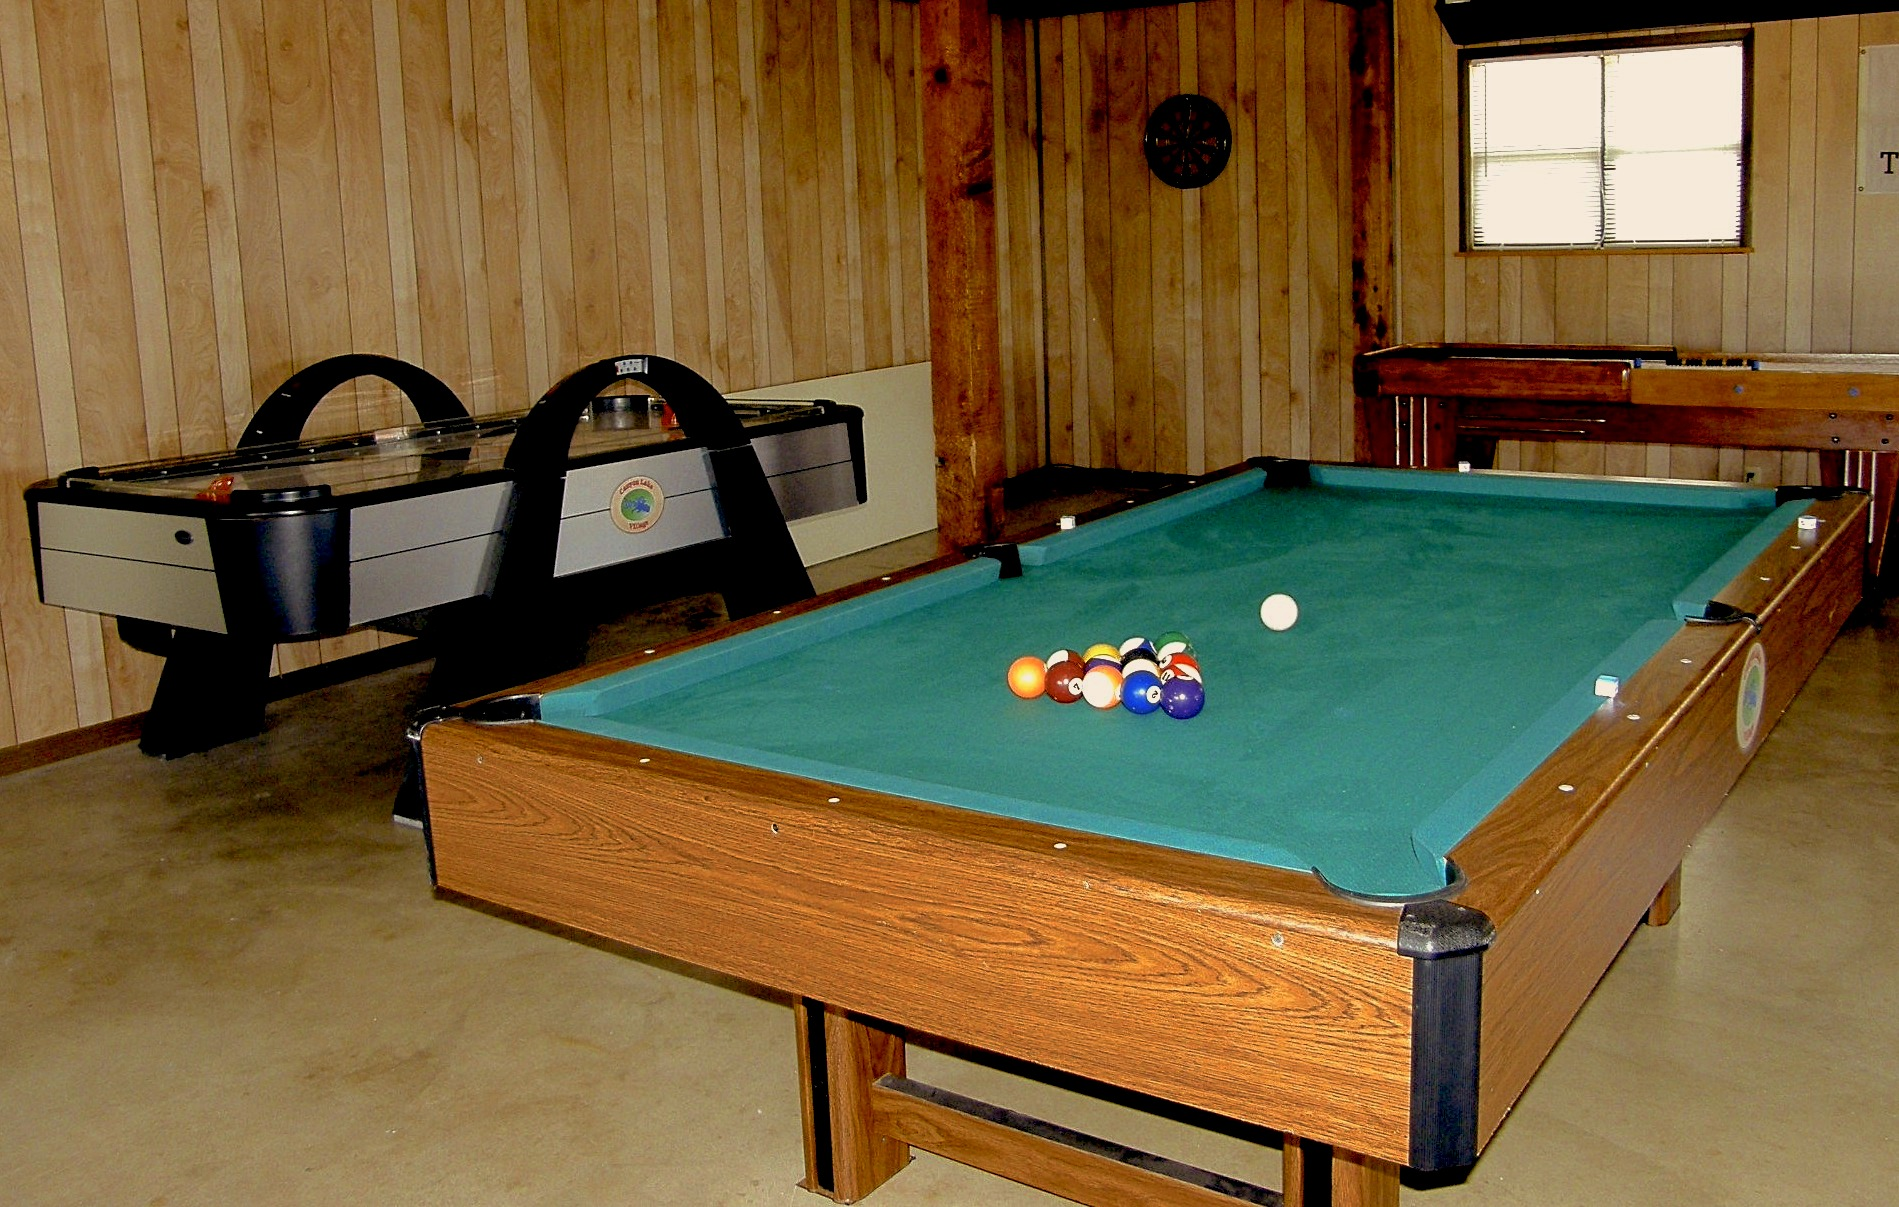 Game Room includes Air Hockey, Pool Table, Ping Pong, and a wonderful restored antique 22 foot Shuffleboard table.